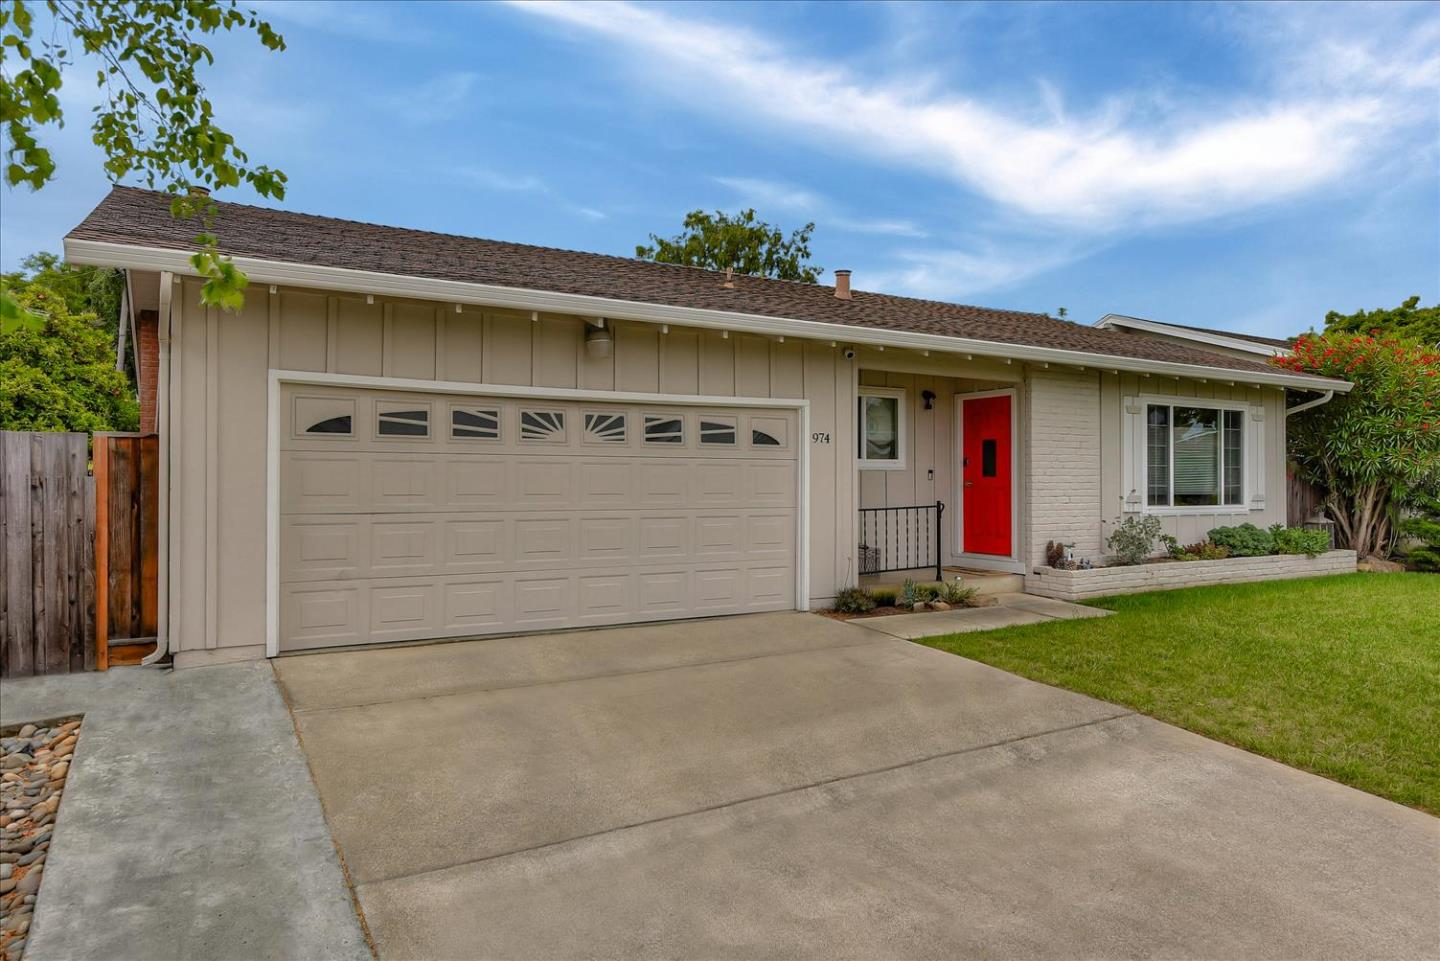 Detail Gallery Image 1 of 1 For 974 Lantana Dr, Sunnyvale, CA 94086 - 4 Beds | 2 Baths